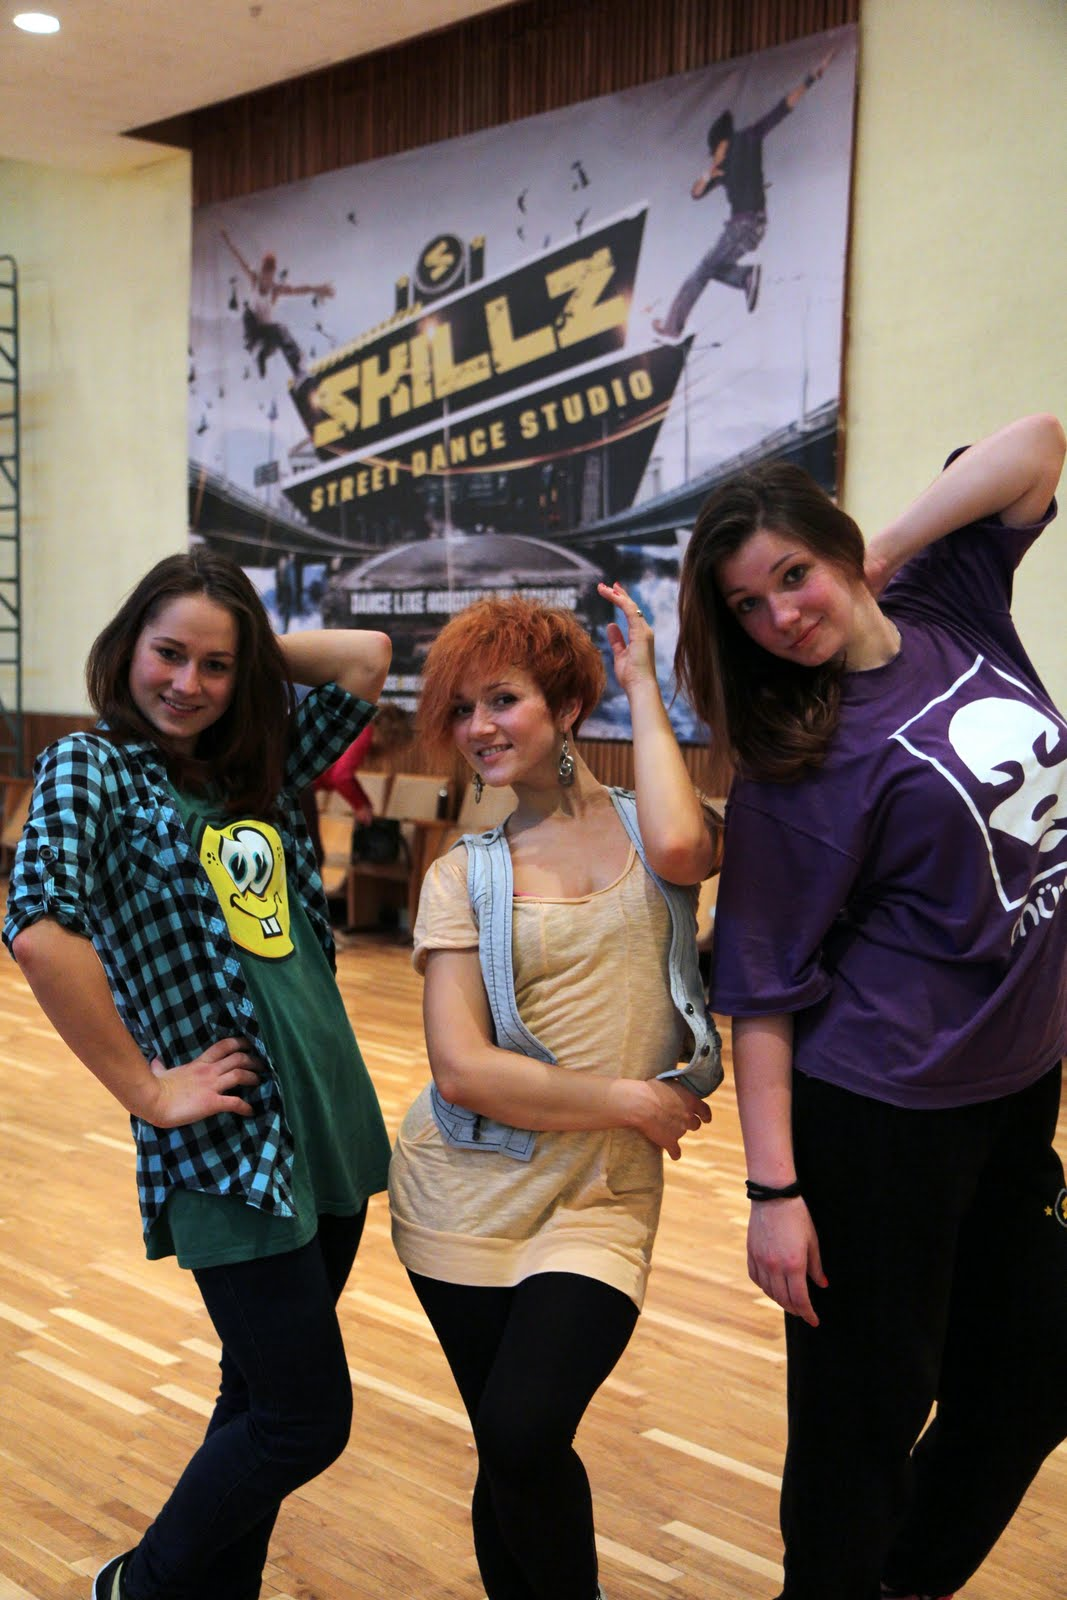 Waacking workshop with Nastya (LV) - IMG_2087.JPG